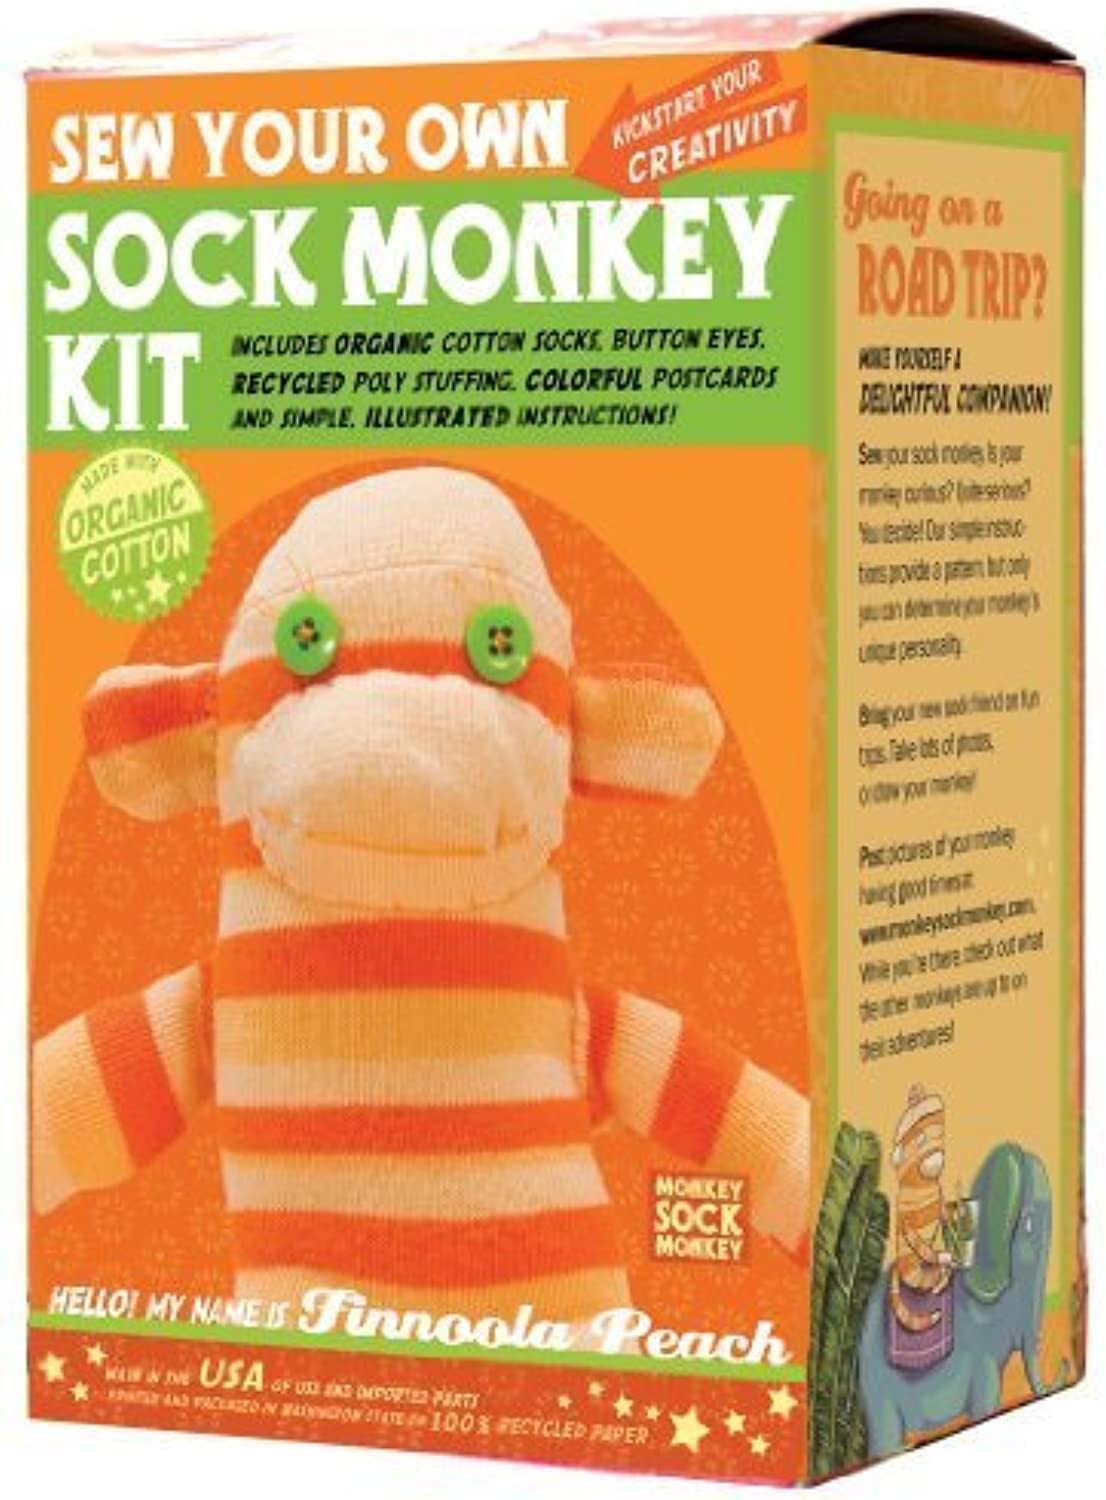 Sock Monkey Kit, Orange , Made in the USA by Monkey Sock Monkey